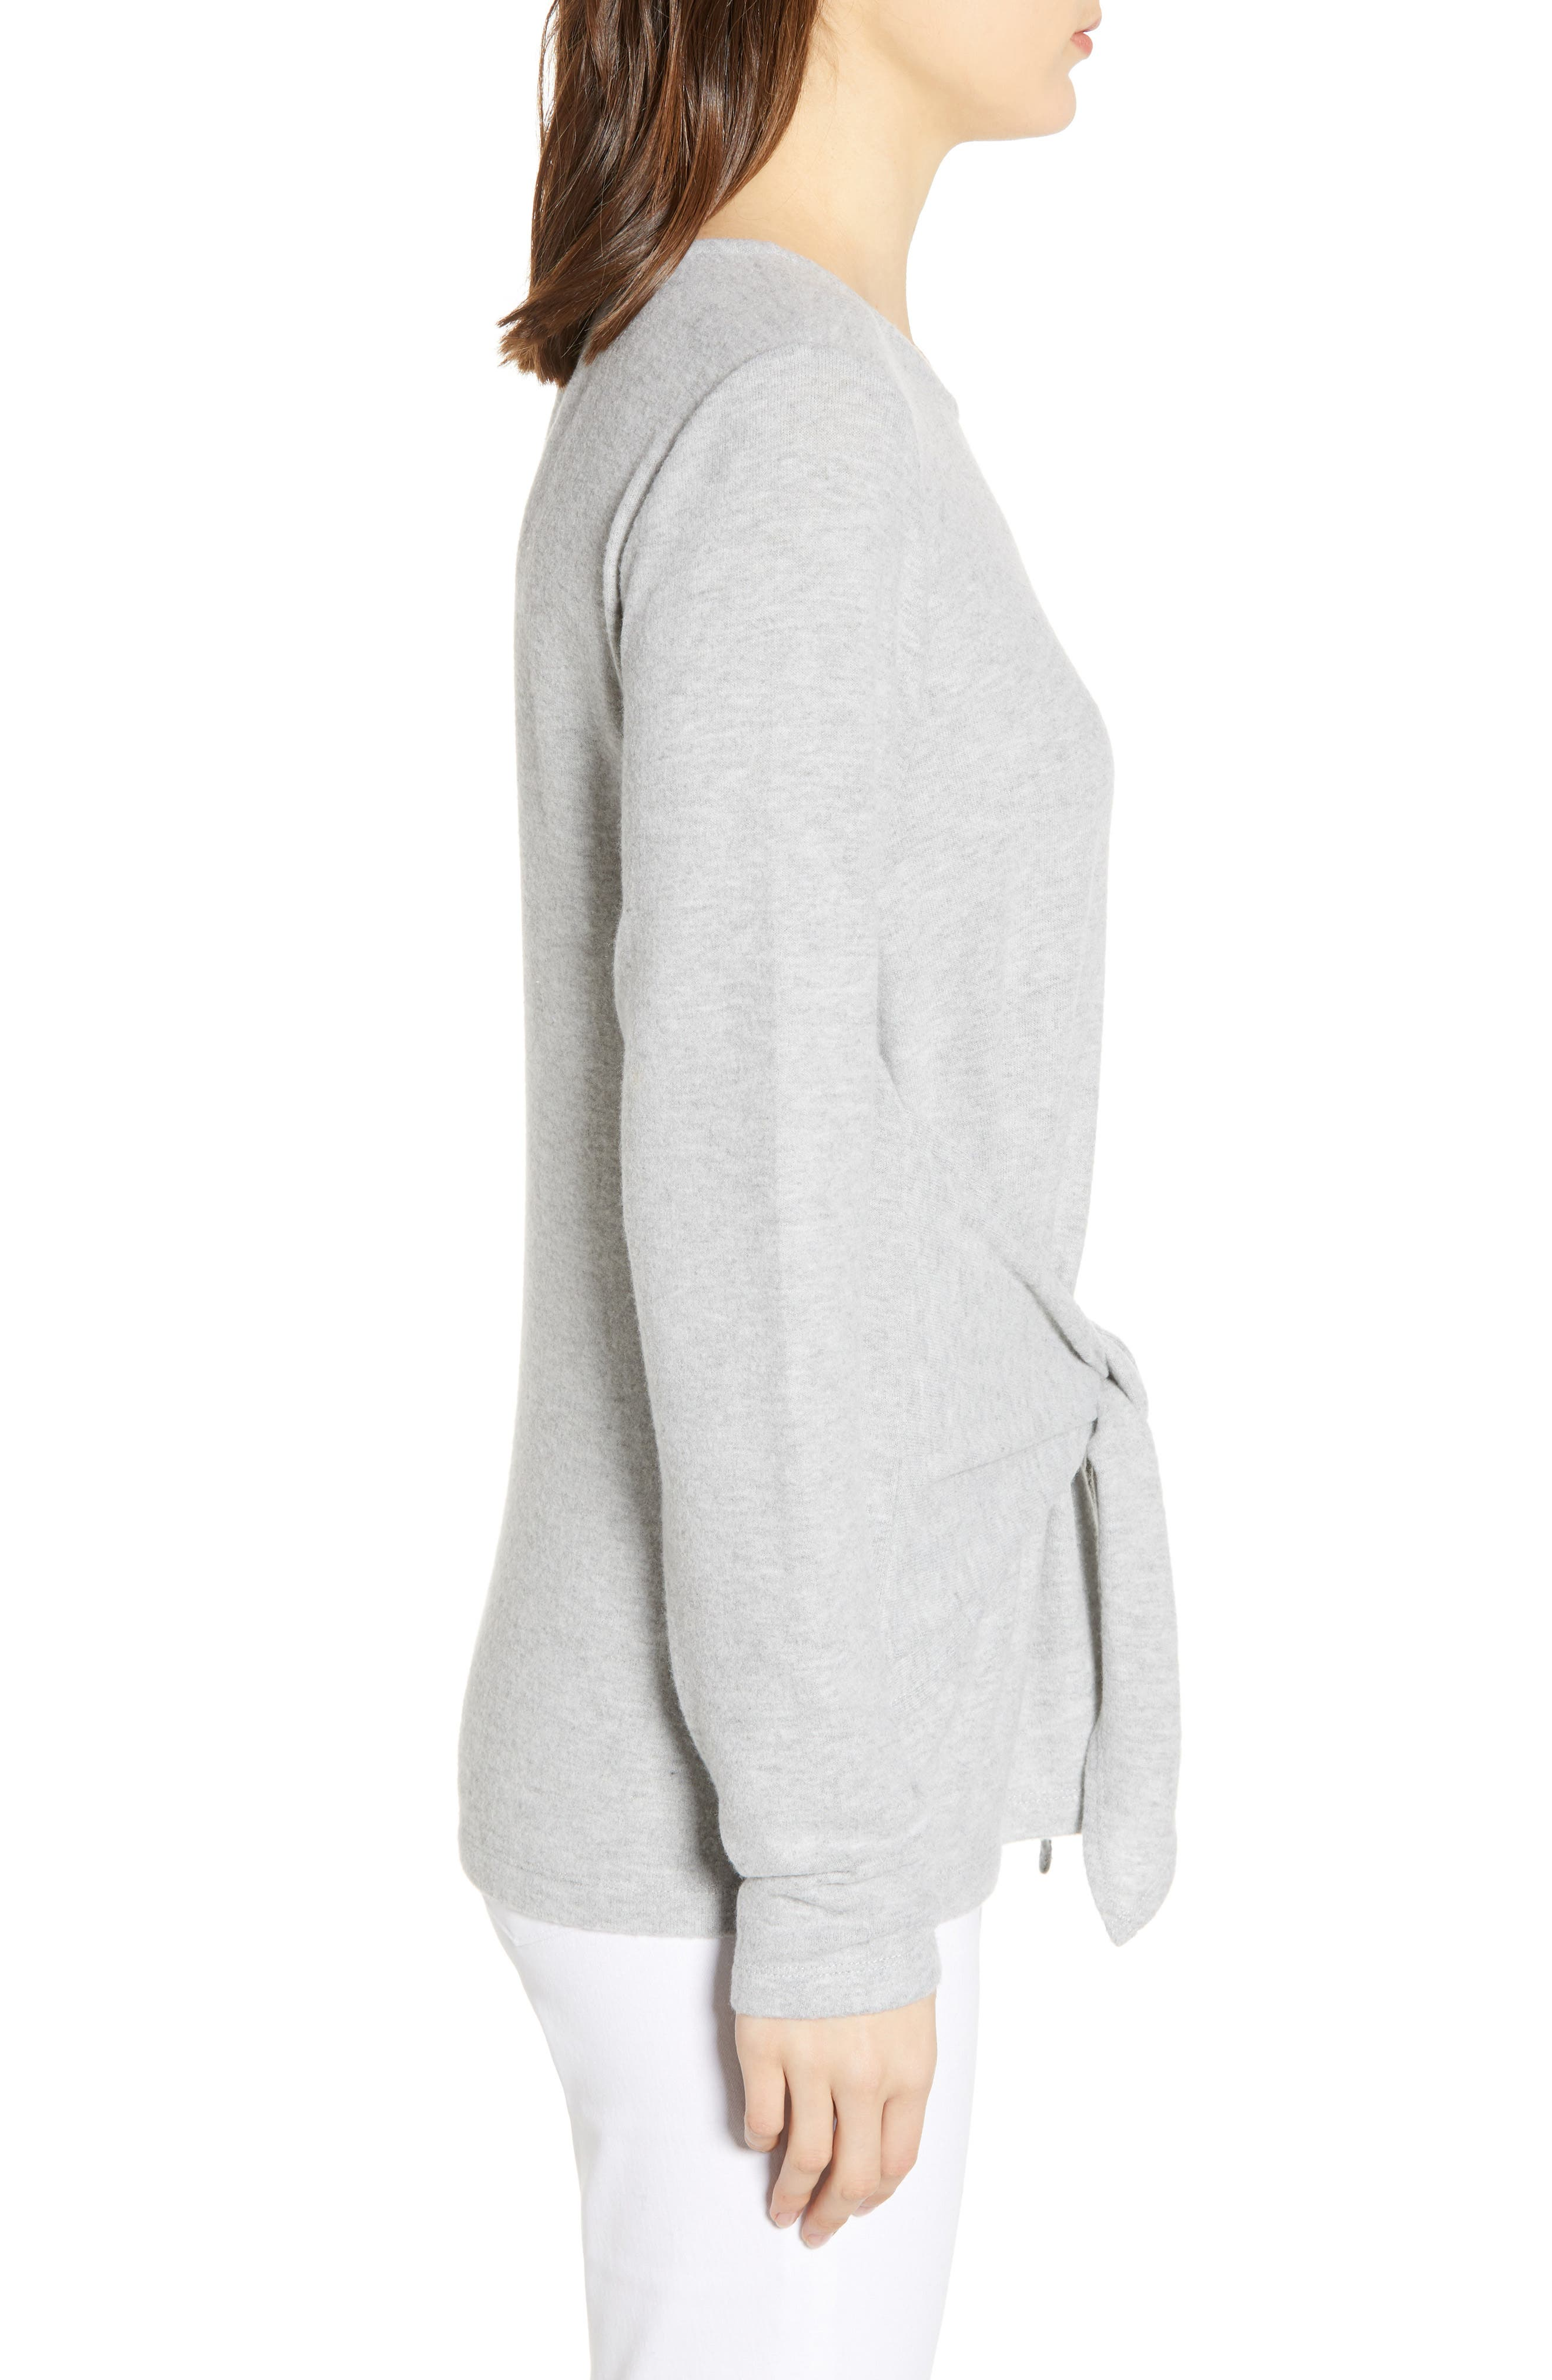 SOCIALITE, Tie Front Top, Alternate thumbnail 3, color, HEATHER GREY